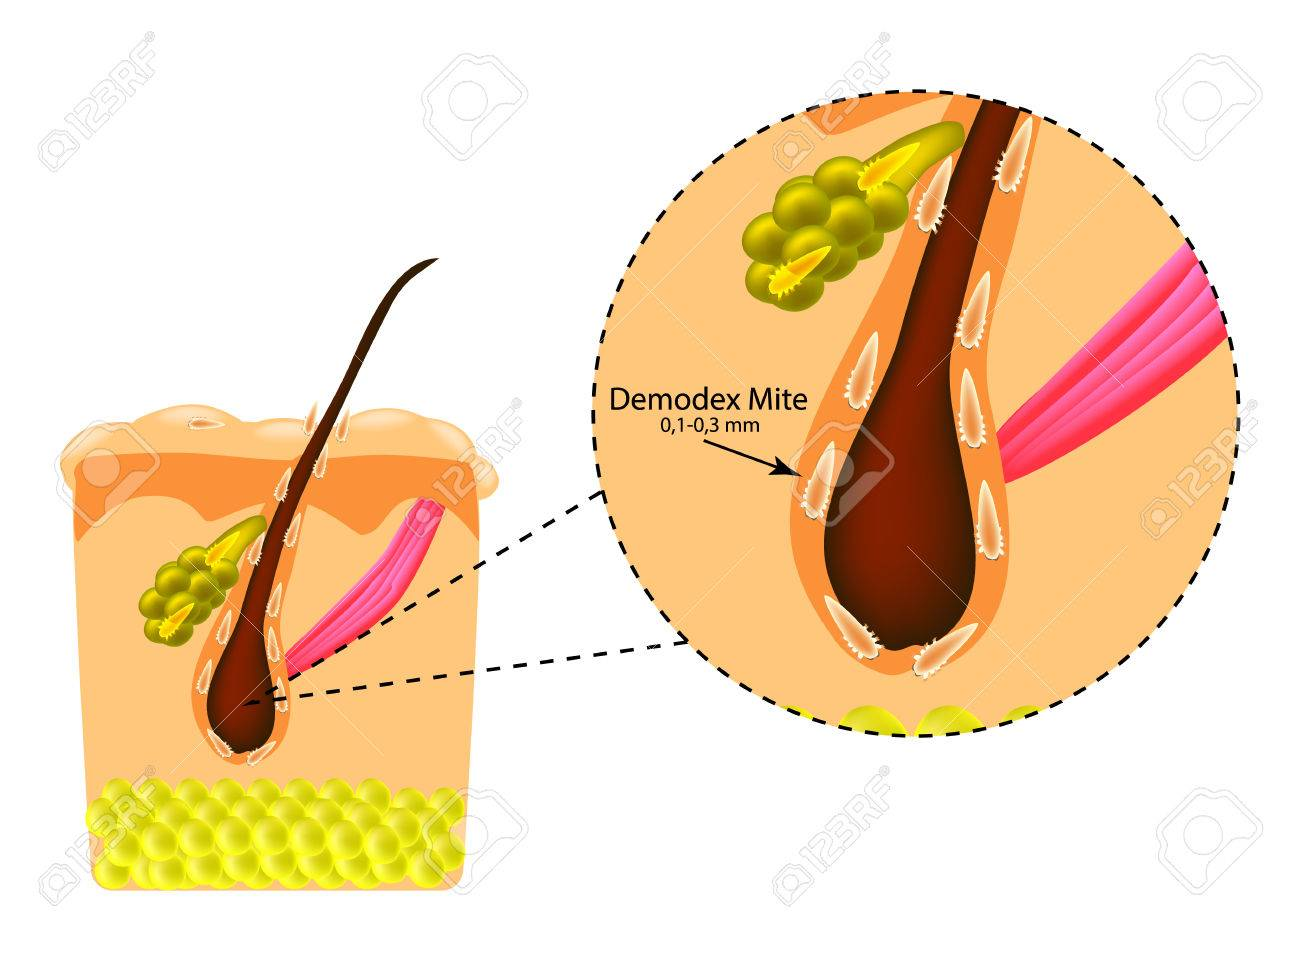 The structure of the hair. Sebaceous gland. Introduction of demodex mite. Demodecosis. Infographics. Vector illustration on isolated background. - 75562856